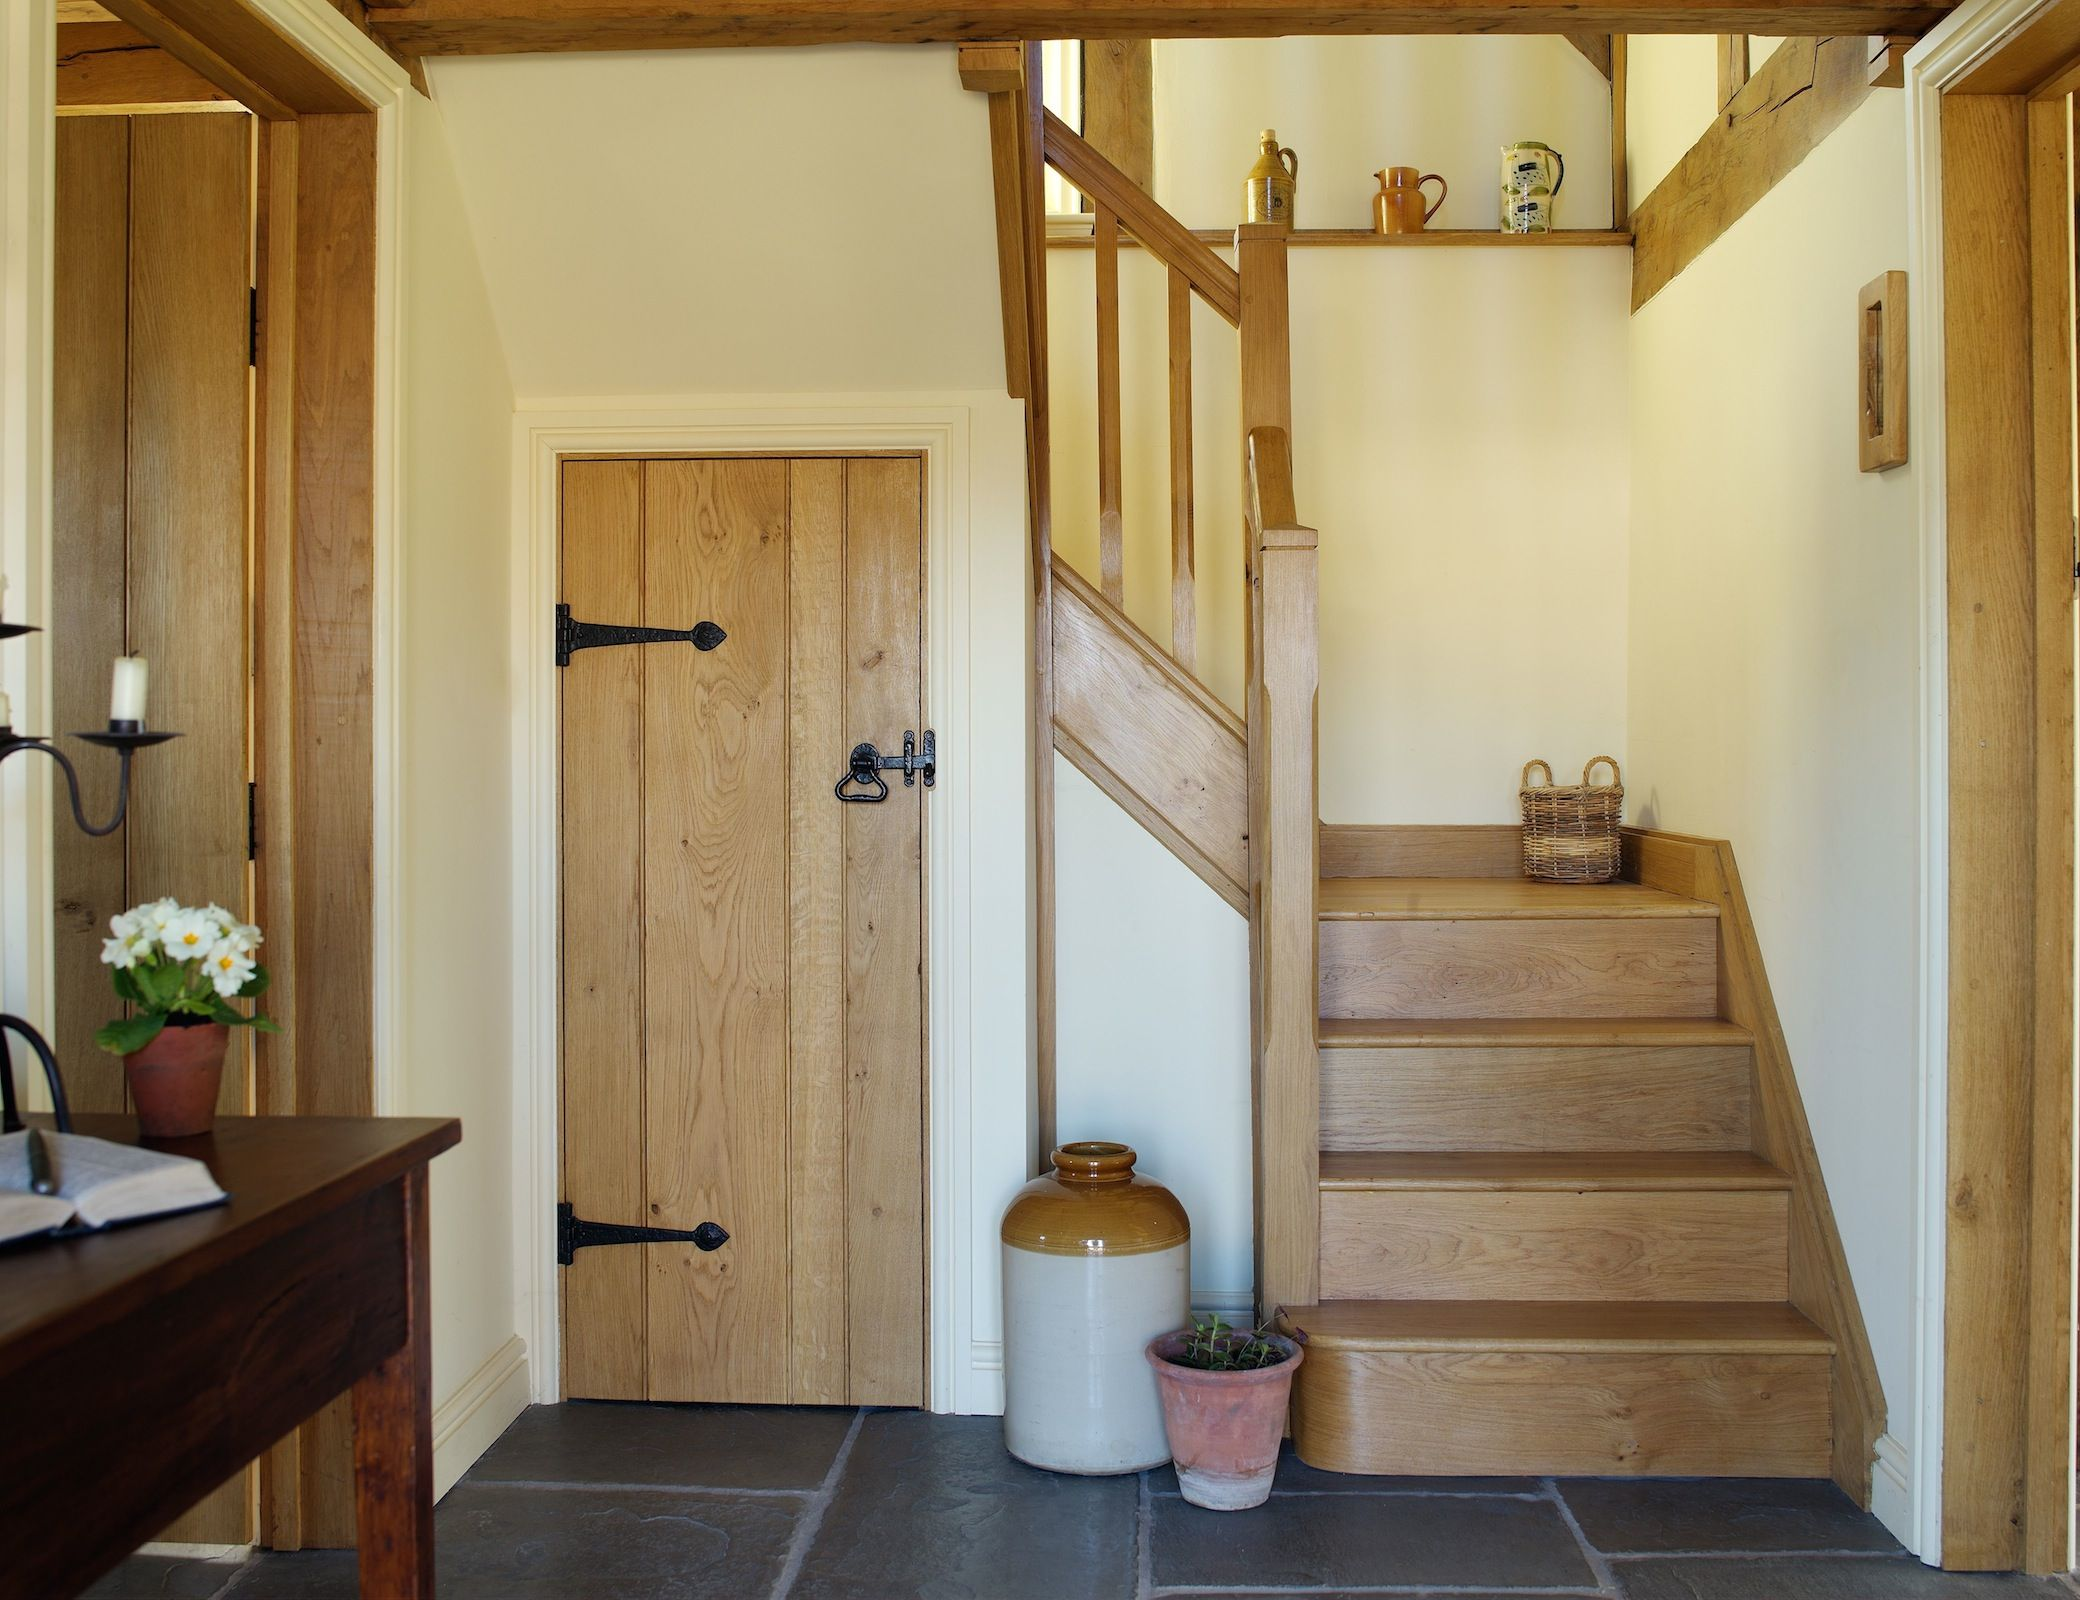 Lighting Basement Washroom Stairs: Open Hallway With Oak Staircase